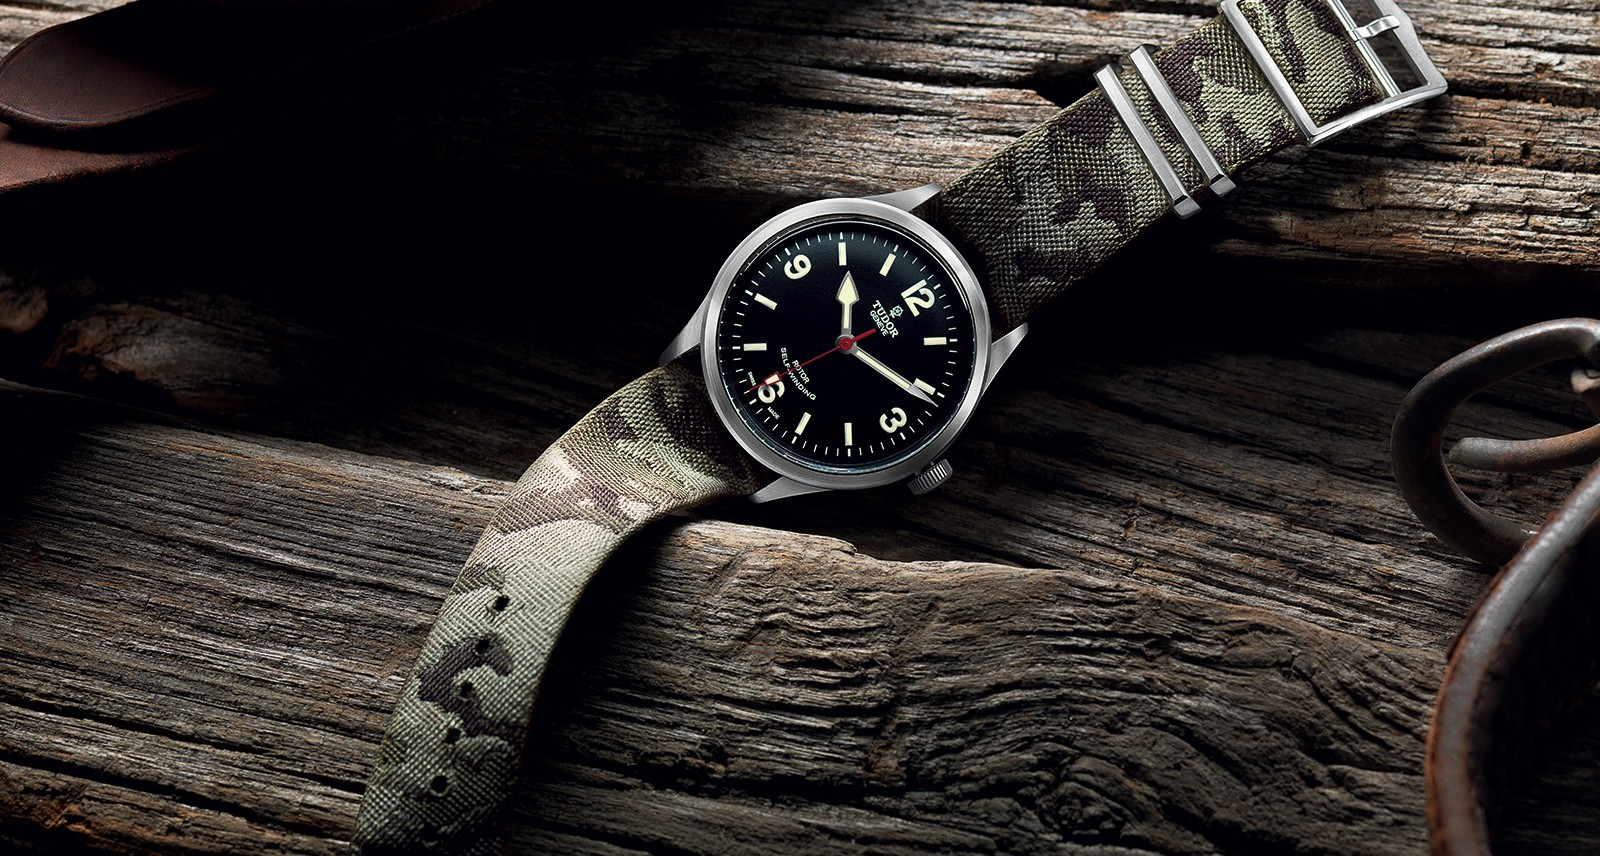 Infographic: The Complete History of the Military Field Watch